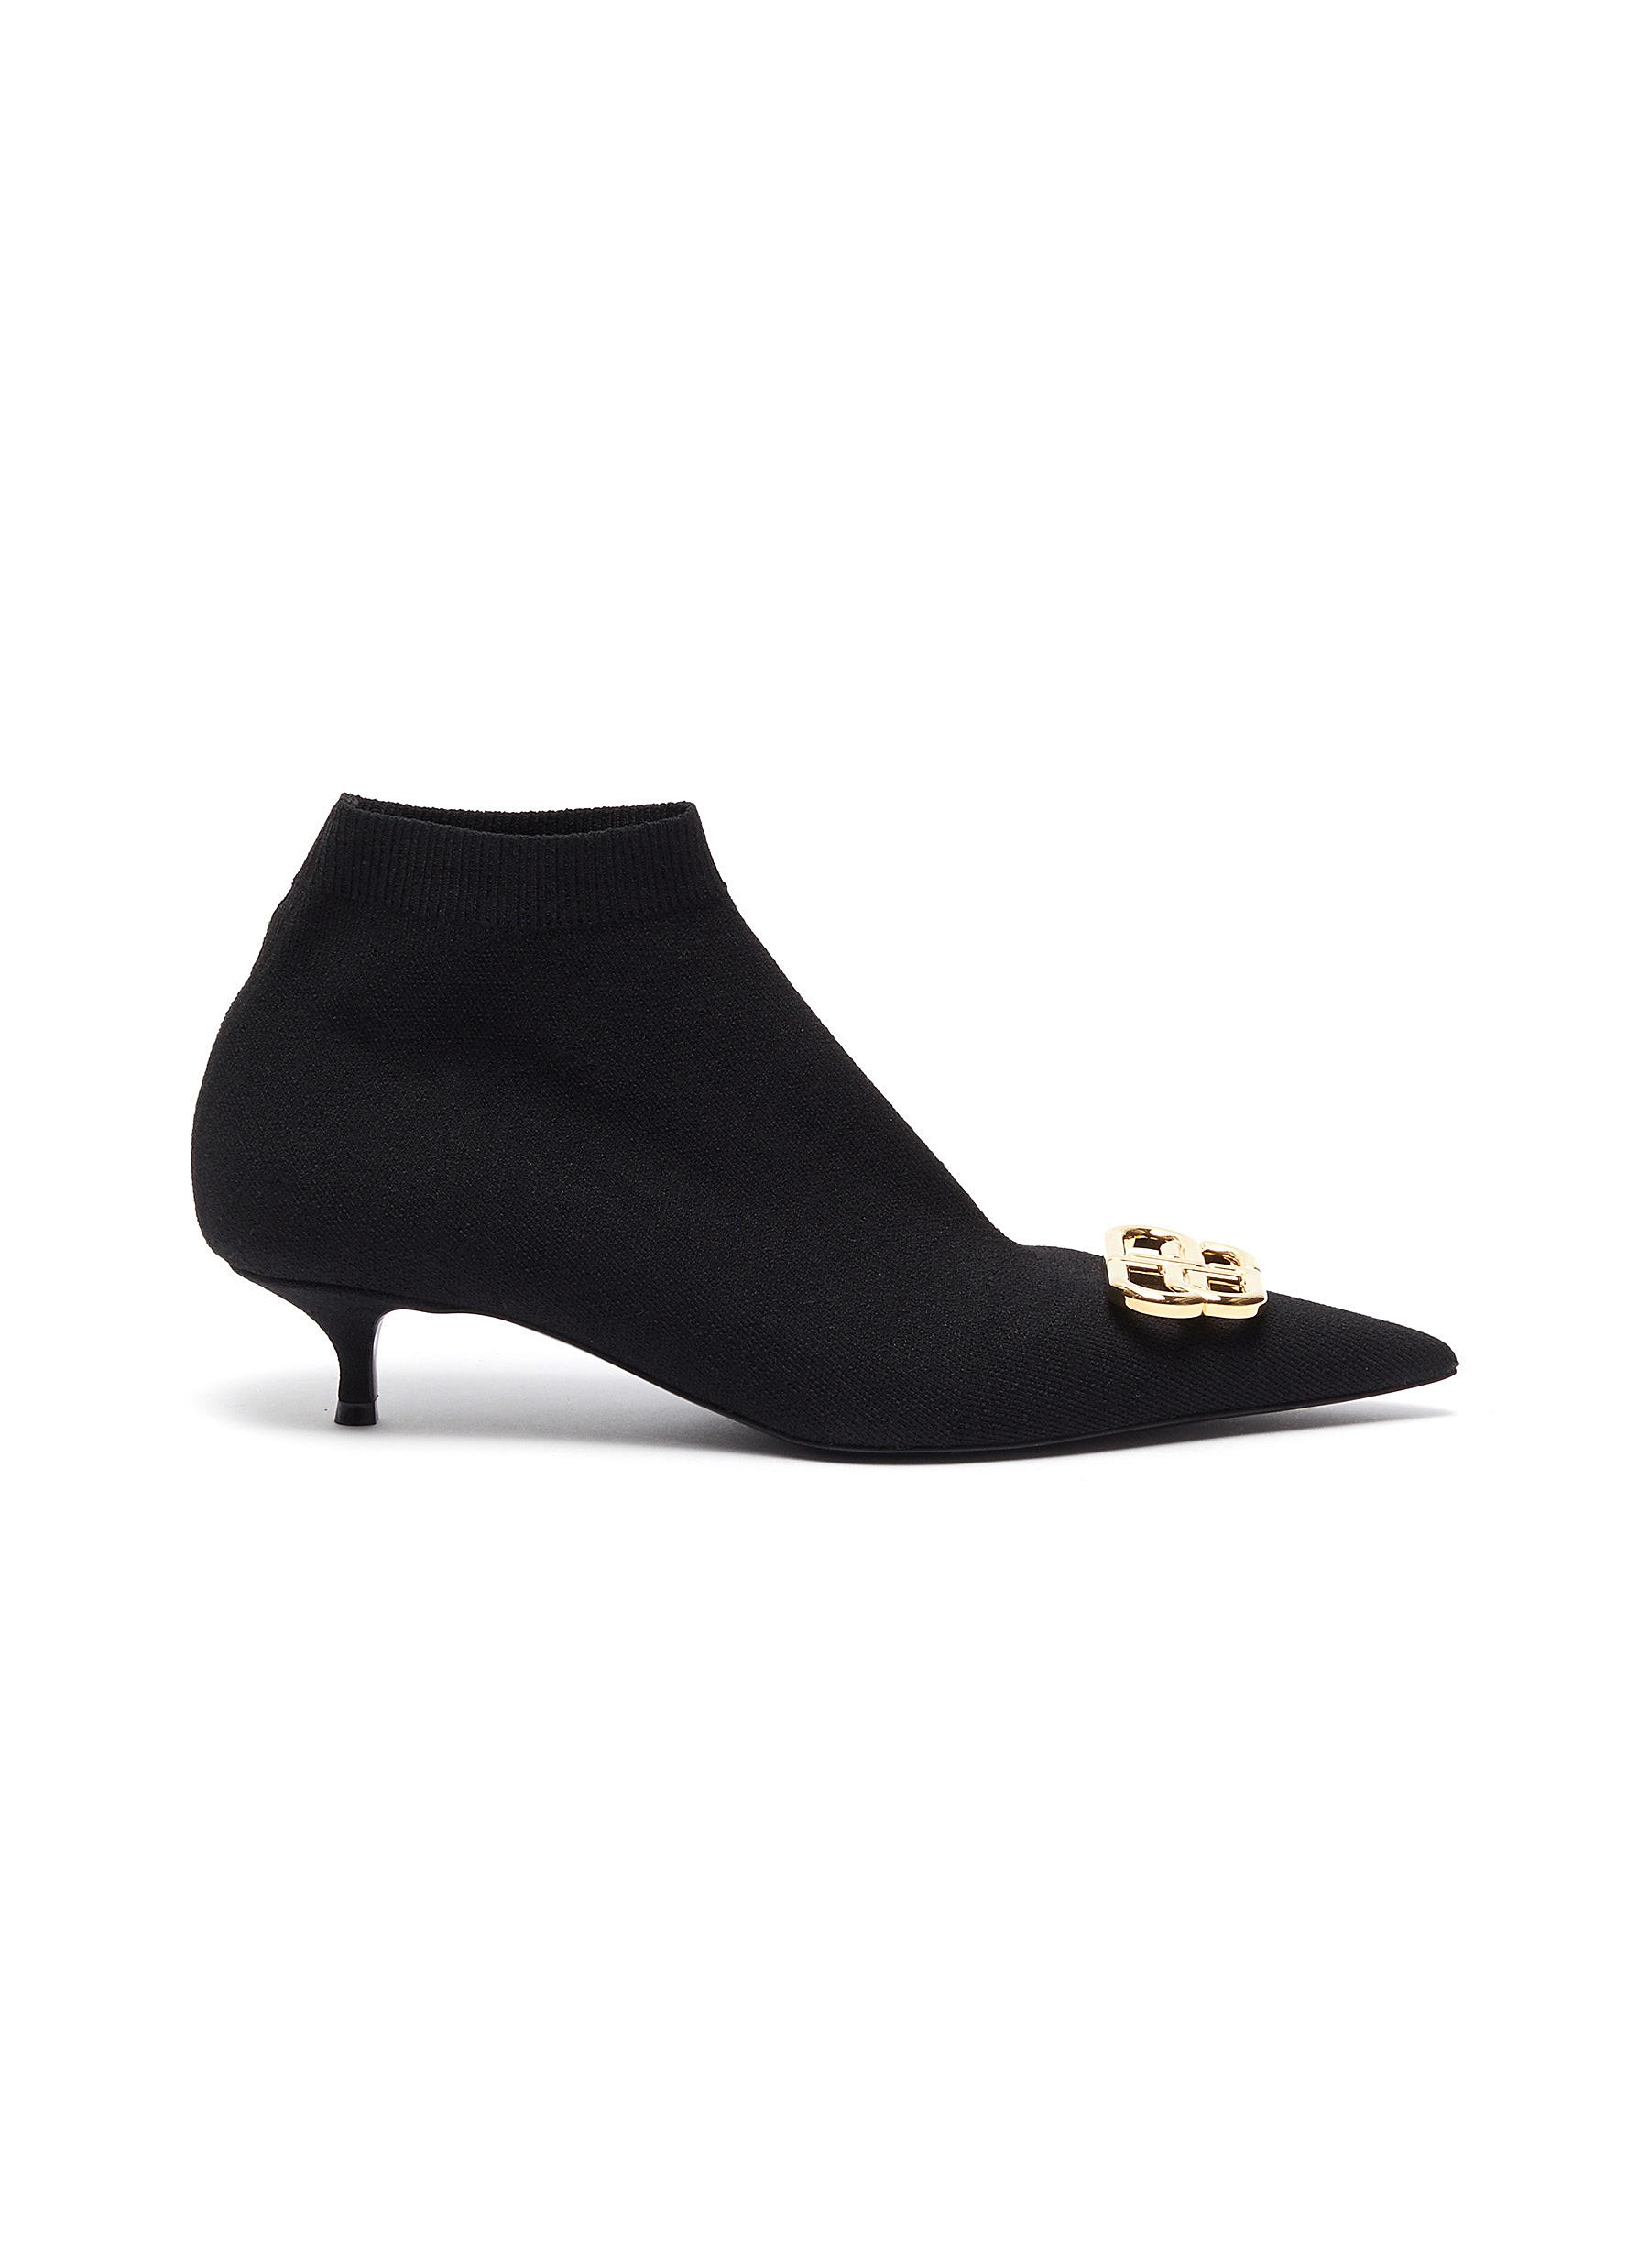 Balenciaga Boots Knife BB logo embellished knit ankle boots